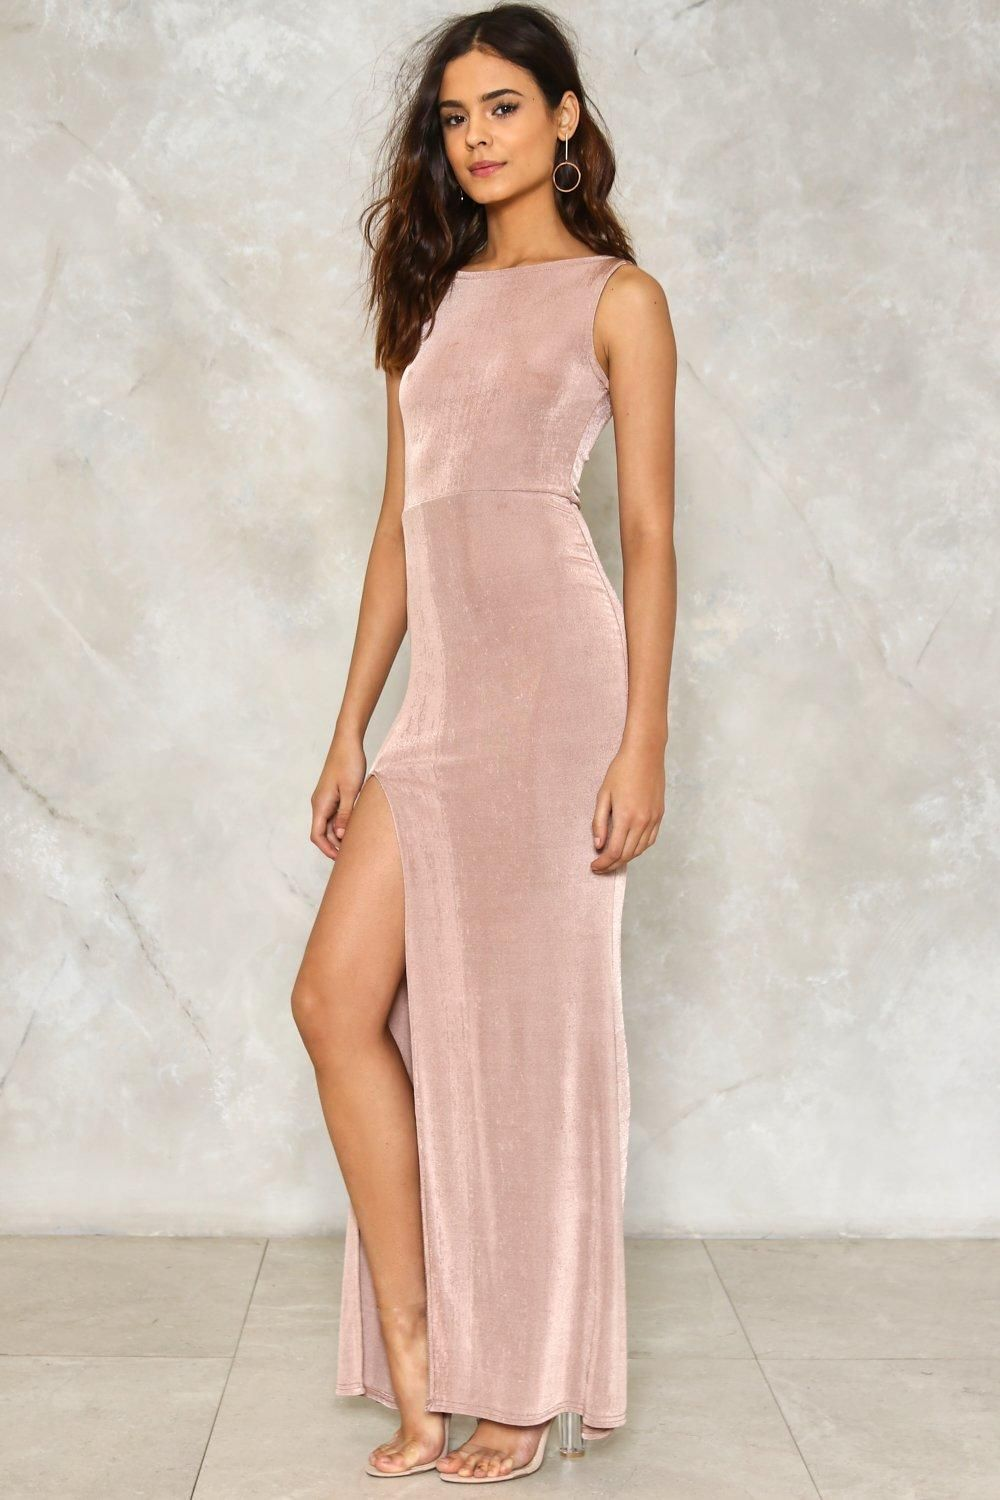 Best New Year S Eve Party Dresses Stylish Designer Dress Ideas For